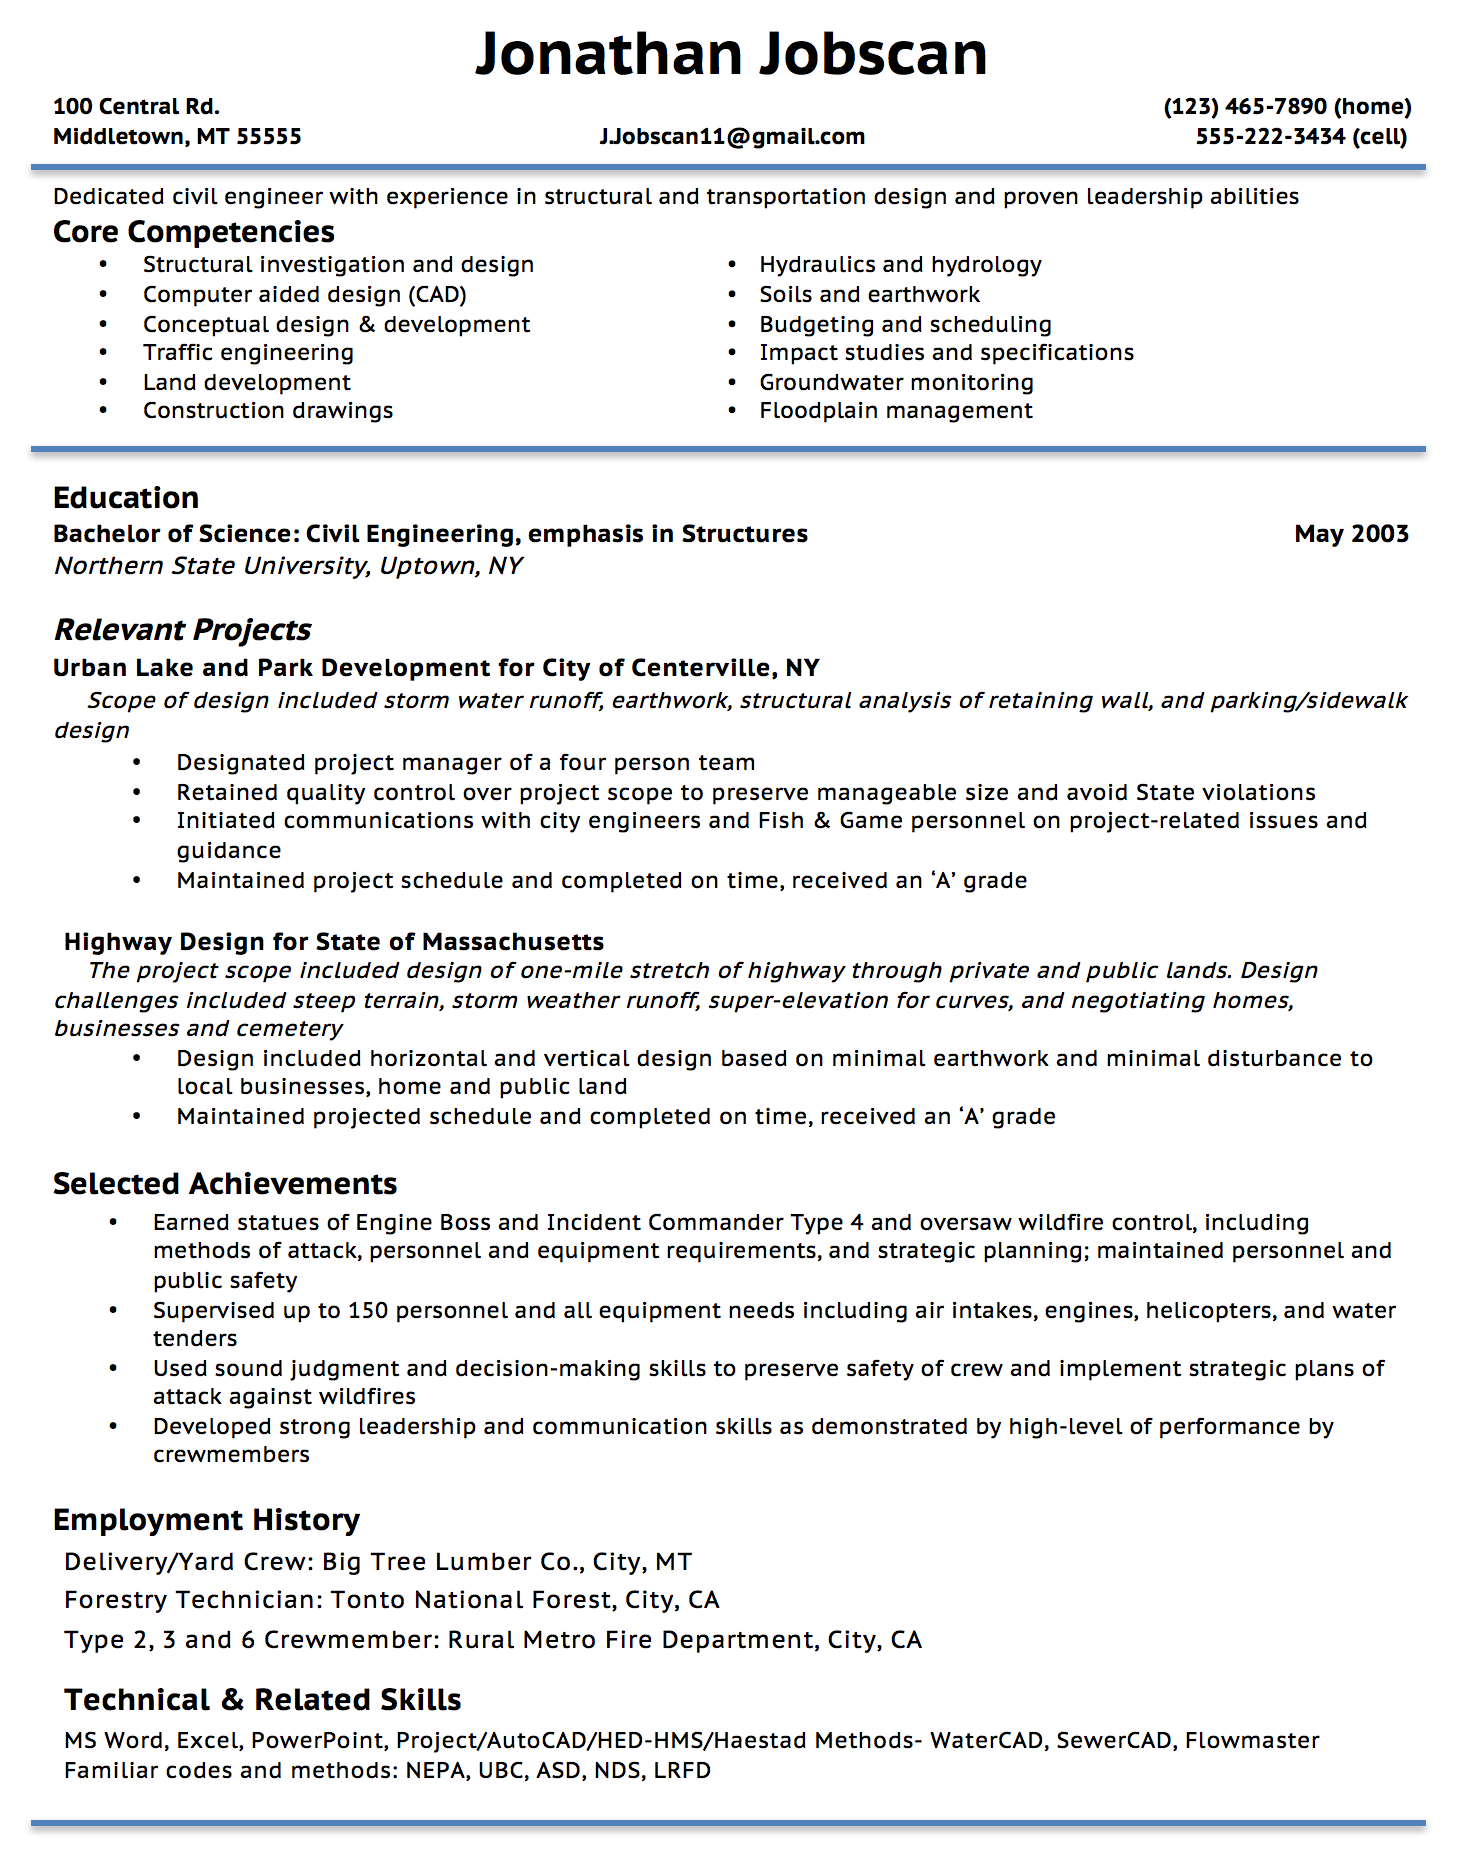 Opposenewapstandardsus  Picturesque Resume Writing Guide  Jobscan With Great Example Of A Functional Resume Format With Lovely Objective For Internship Resume Also Visual Resumes In Addition Resume Reference Format And Example Of Objective On Resume As Well As Good Resume Cover Letter Additionally Resume Mission Statement Examples From Jobscanco With Opposenewapstandardsus  Great Resume Writing Guide  Jobscan With Lovely Example Of A Functional Resume Format And Picturesque Objective For Internship Resume Also Visual Resumes In Addition Resume Reference Format From Jobscanco